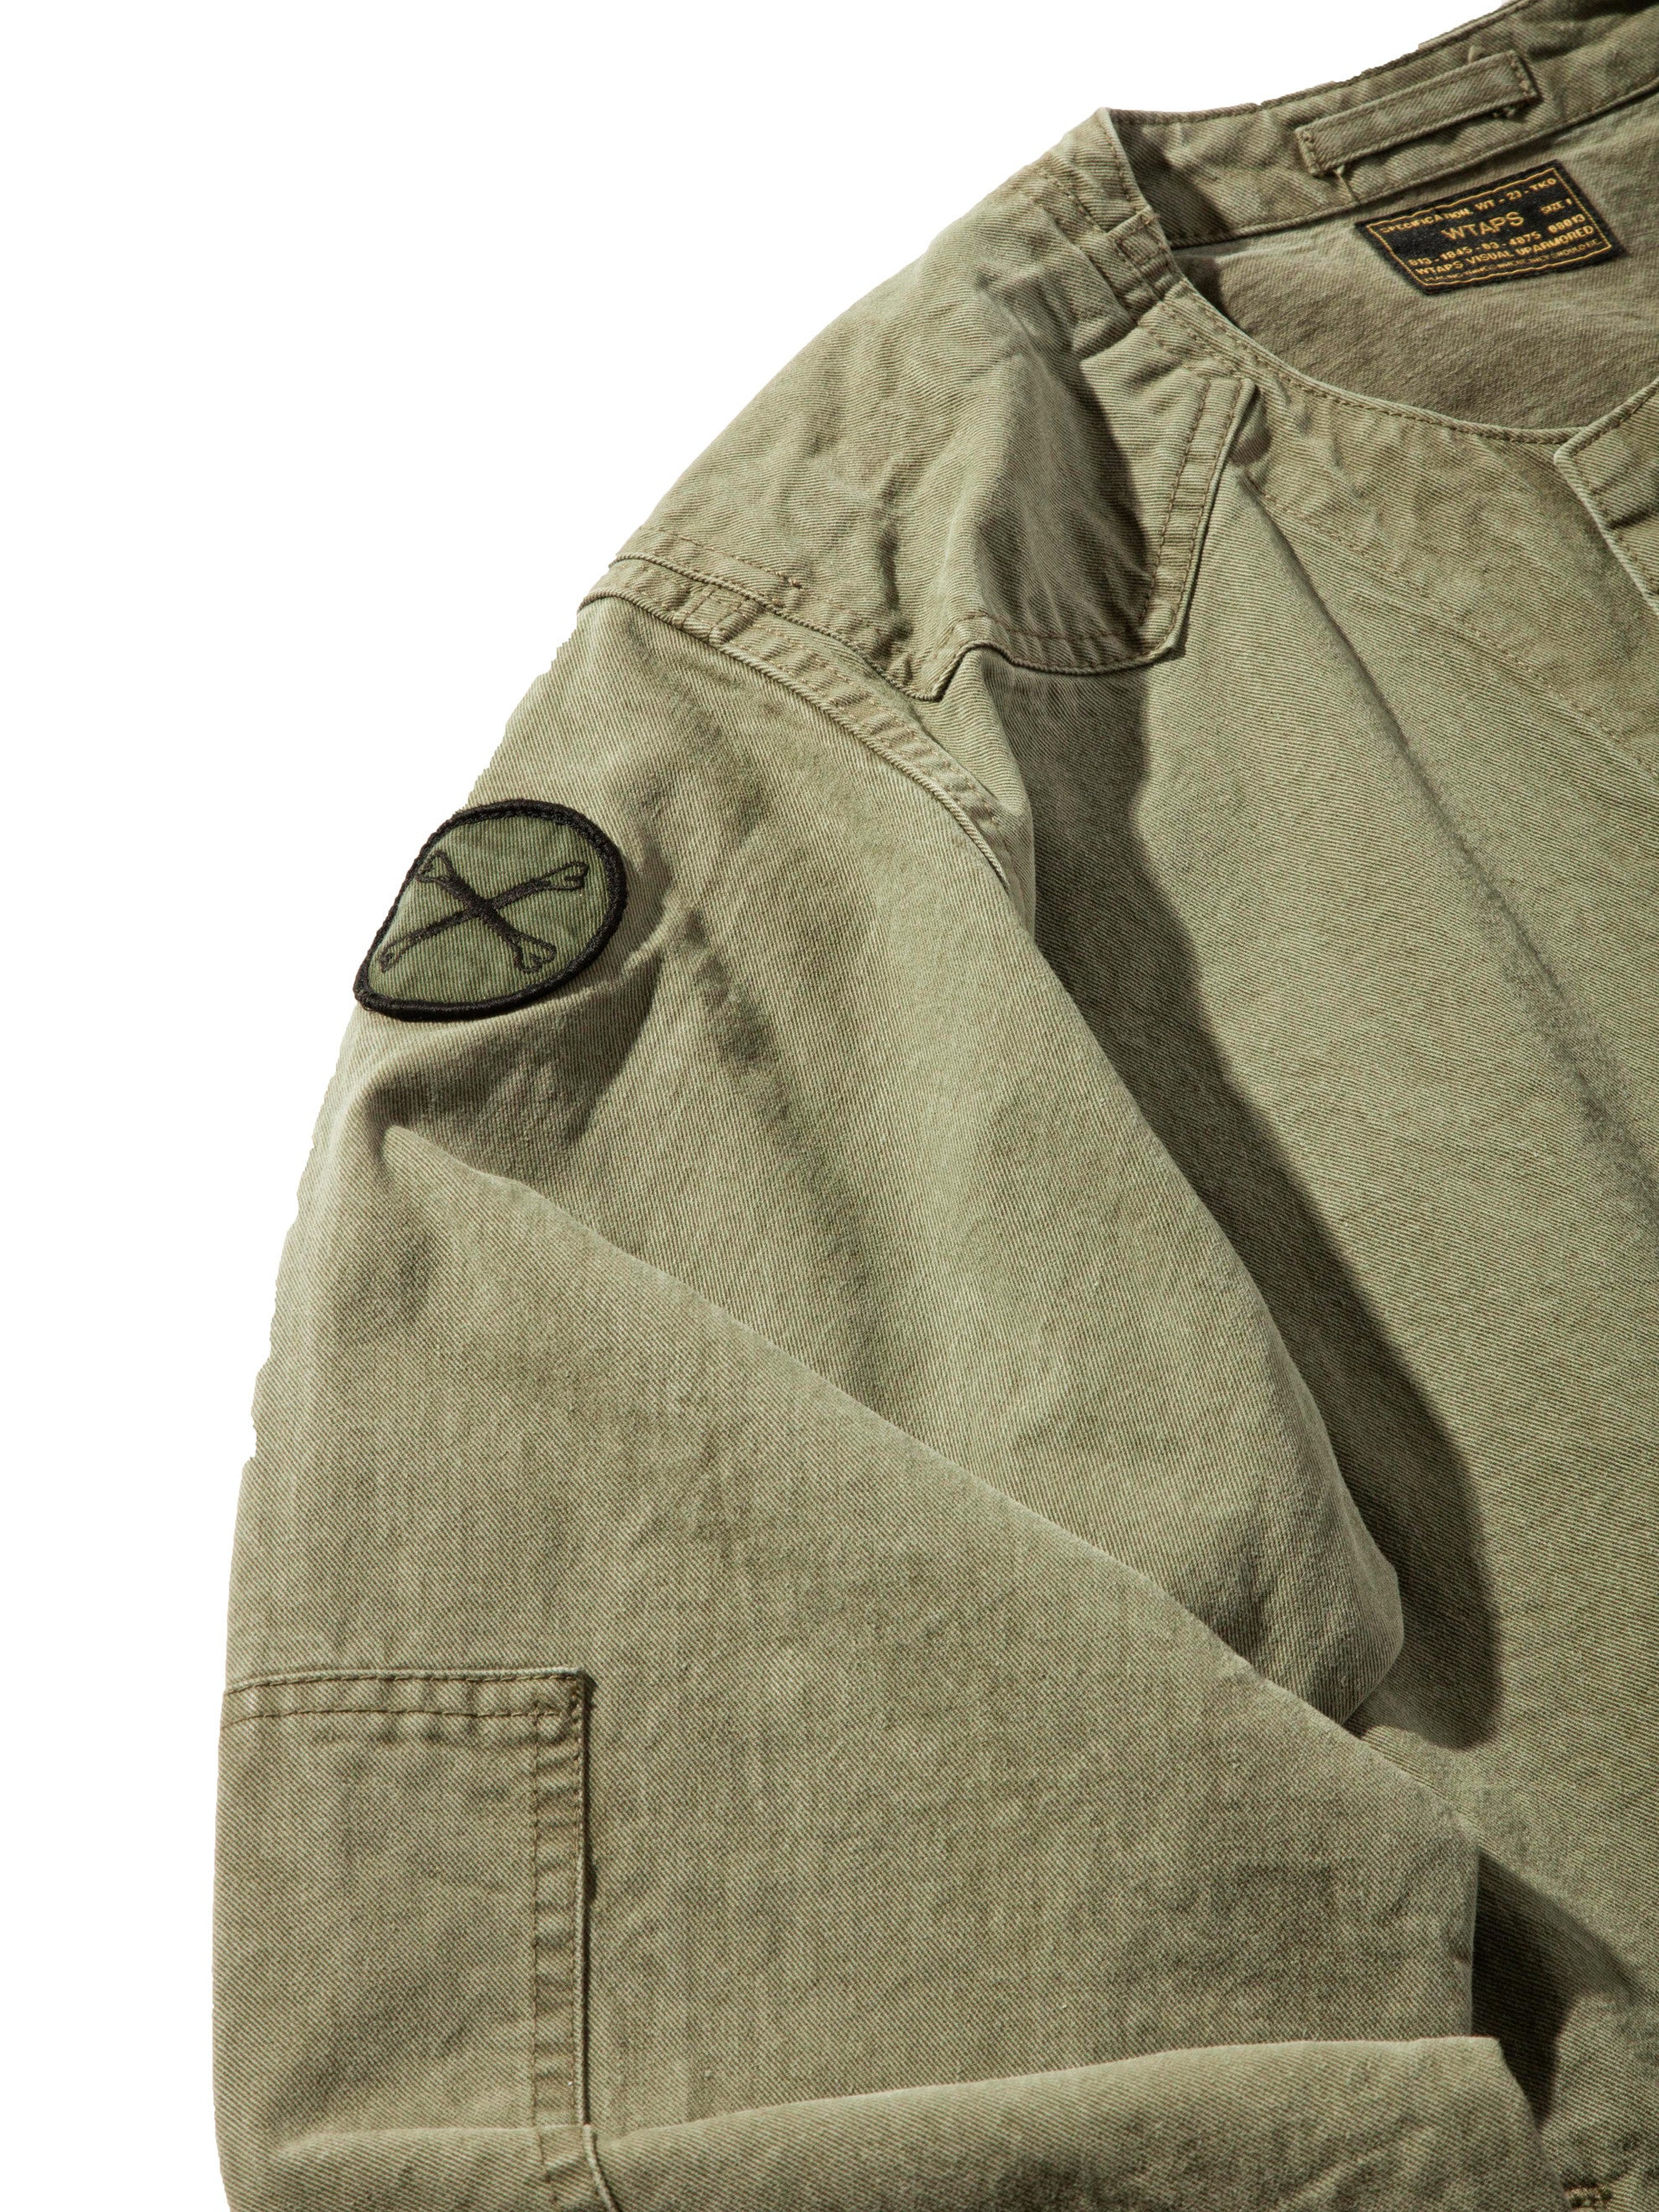 Olive Drab Scout LS 02 Shirt (Cotton Chino) 10